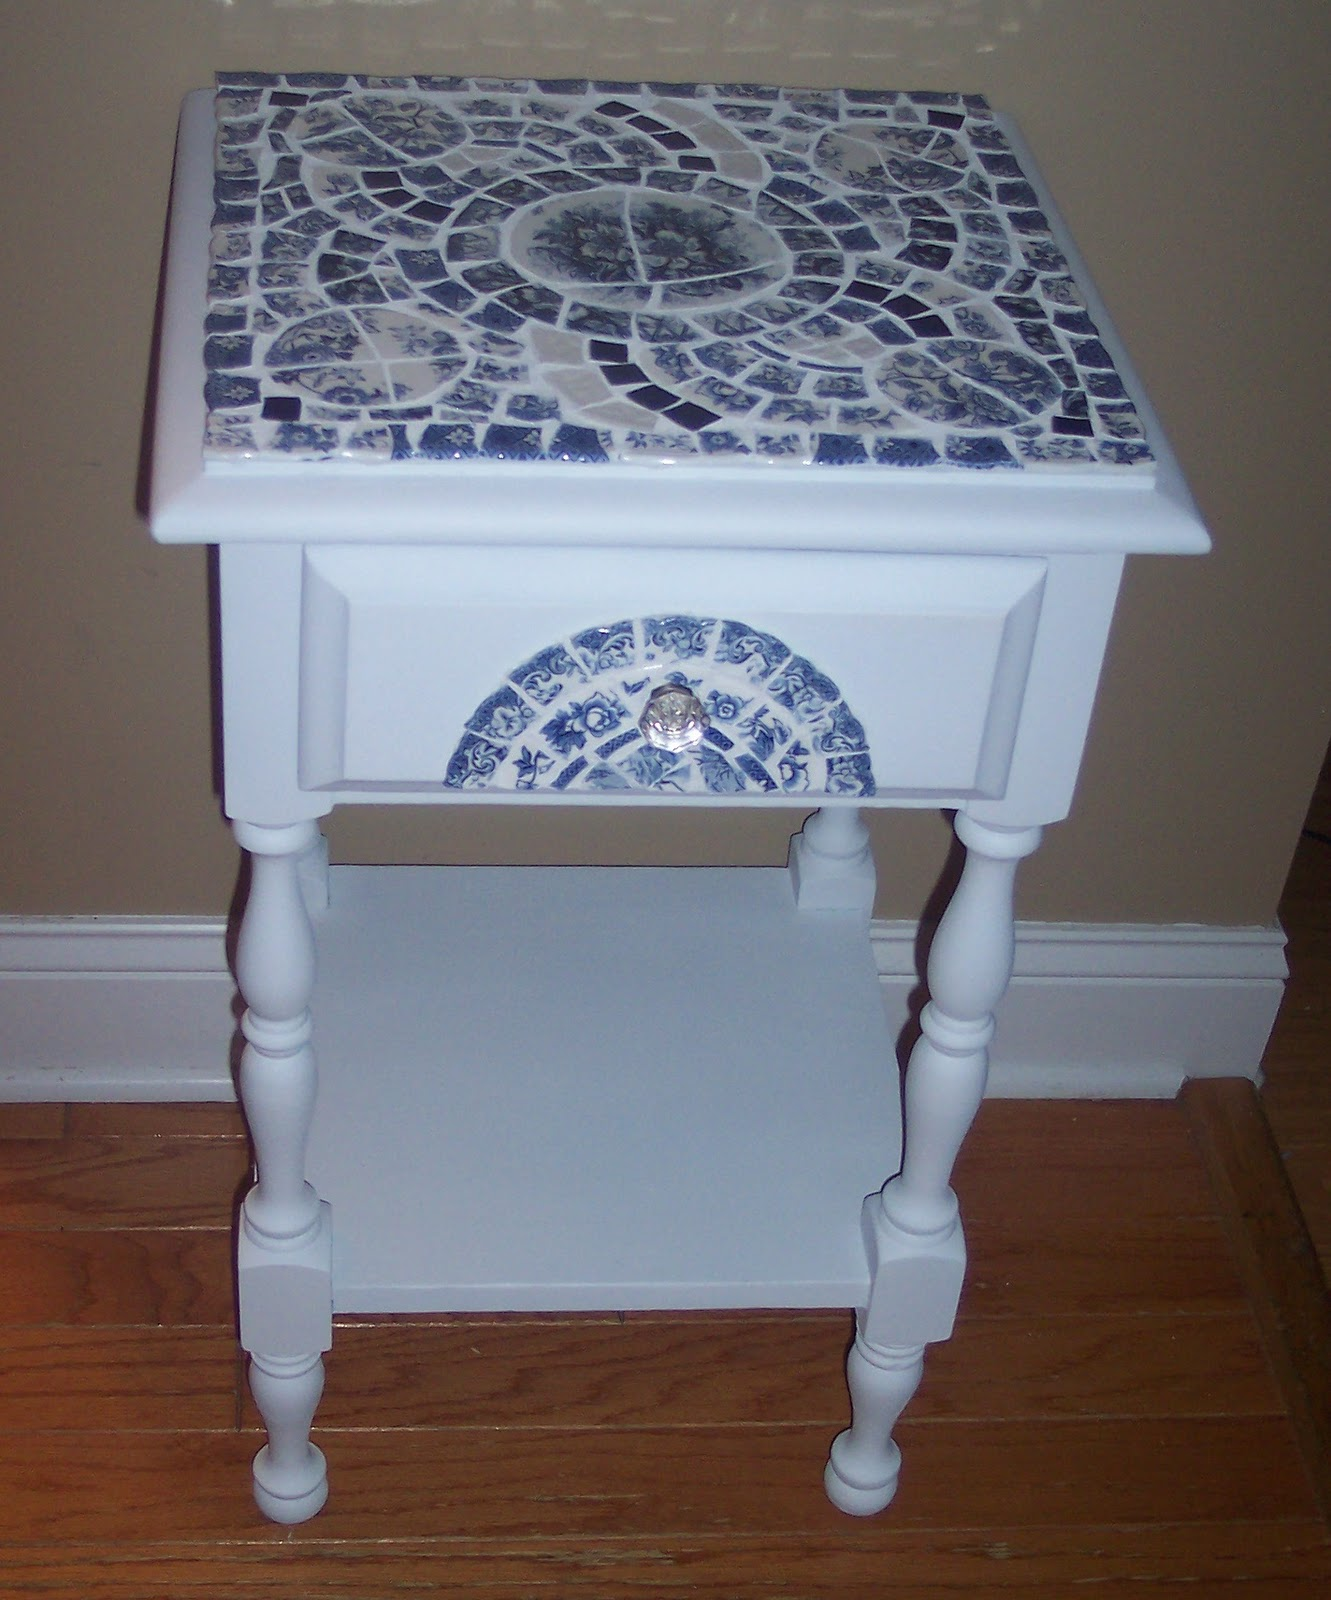 Uniquely Chic Furniture Blue And White Mosaic Side Table. Round Concrete Dining Table. Small White Side Table. Silver Chest Of Drawers. Under Desk Cable Trunking. Living Room Table With Storage. Drawer Pulls For Kids Dressers. Cheap Kitchen Drawer Units. Under Bed Drawers Ikea